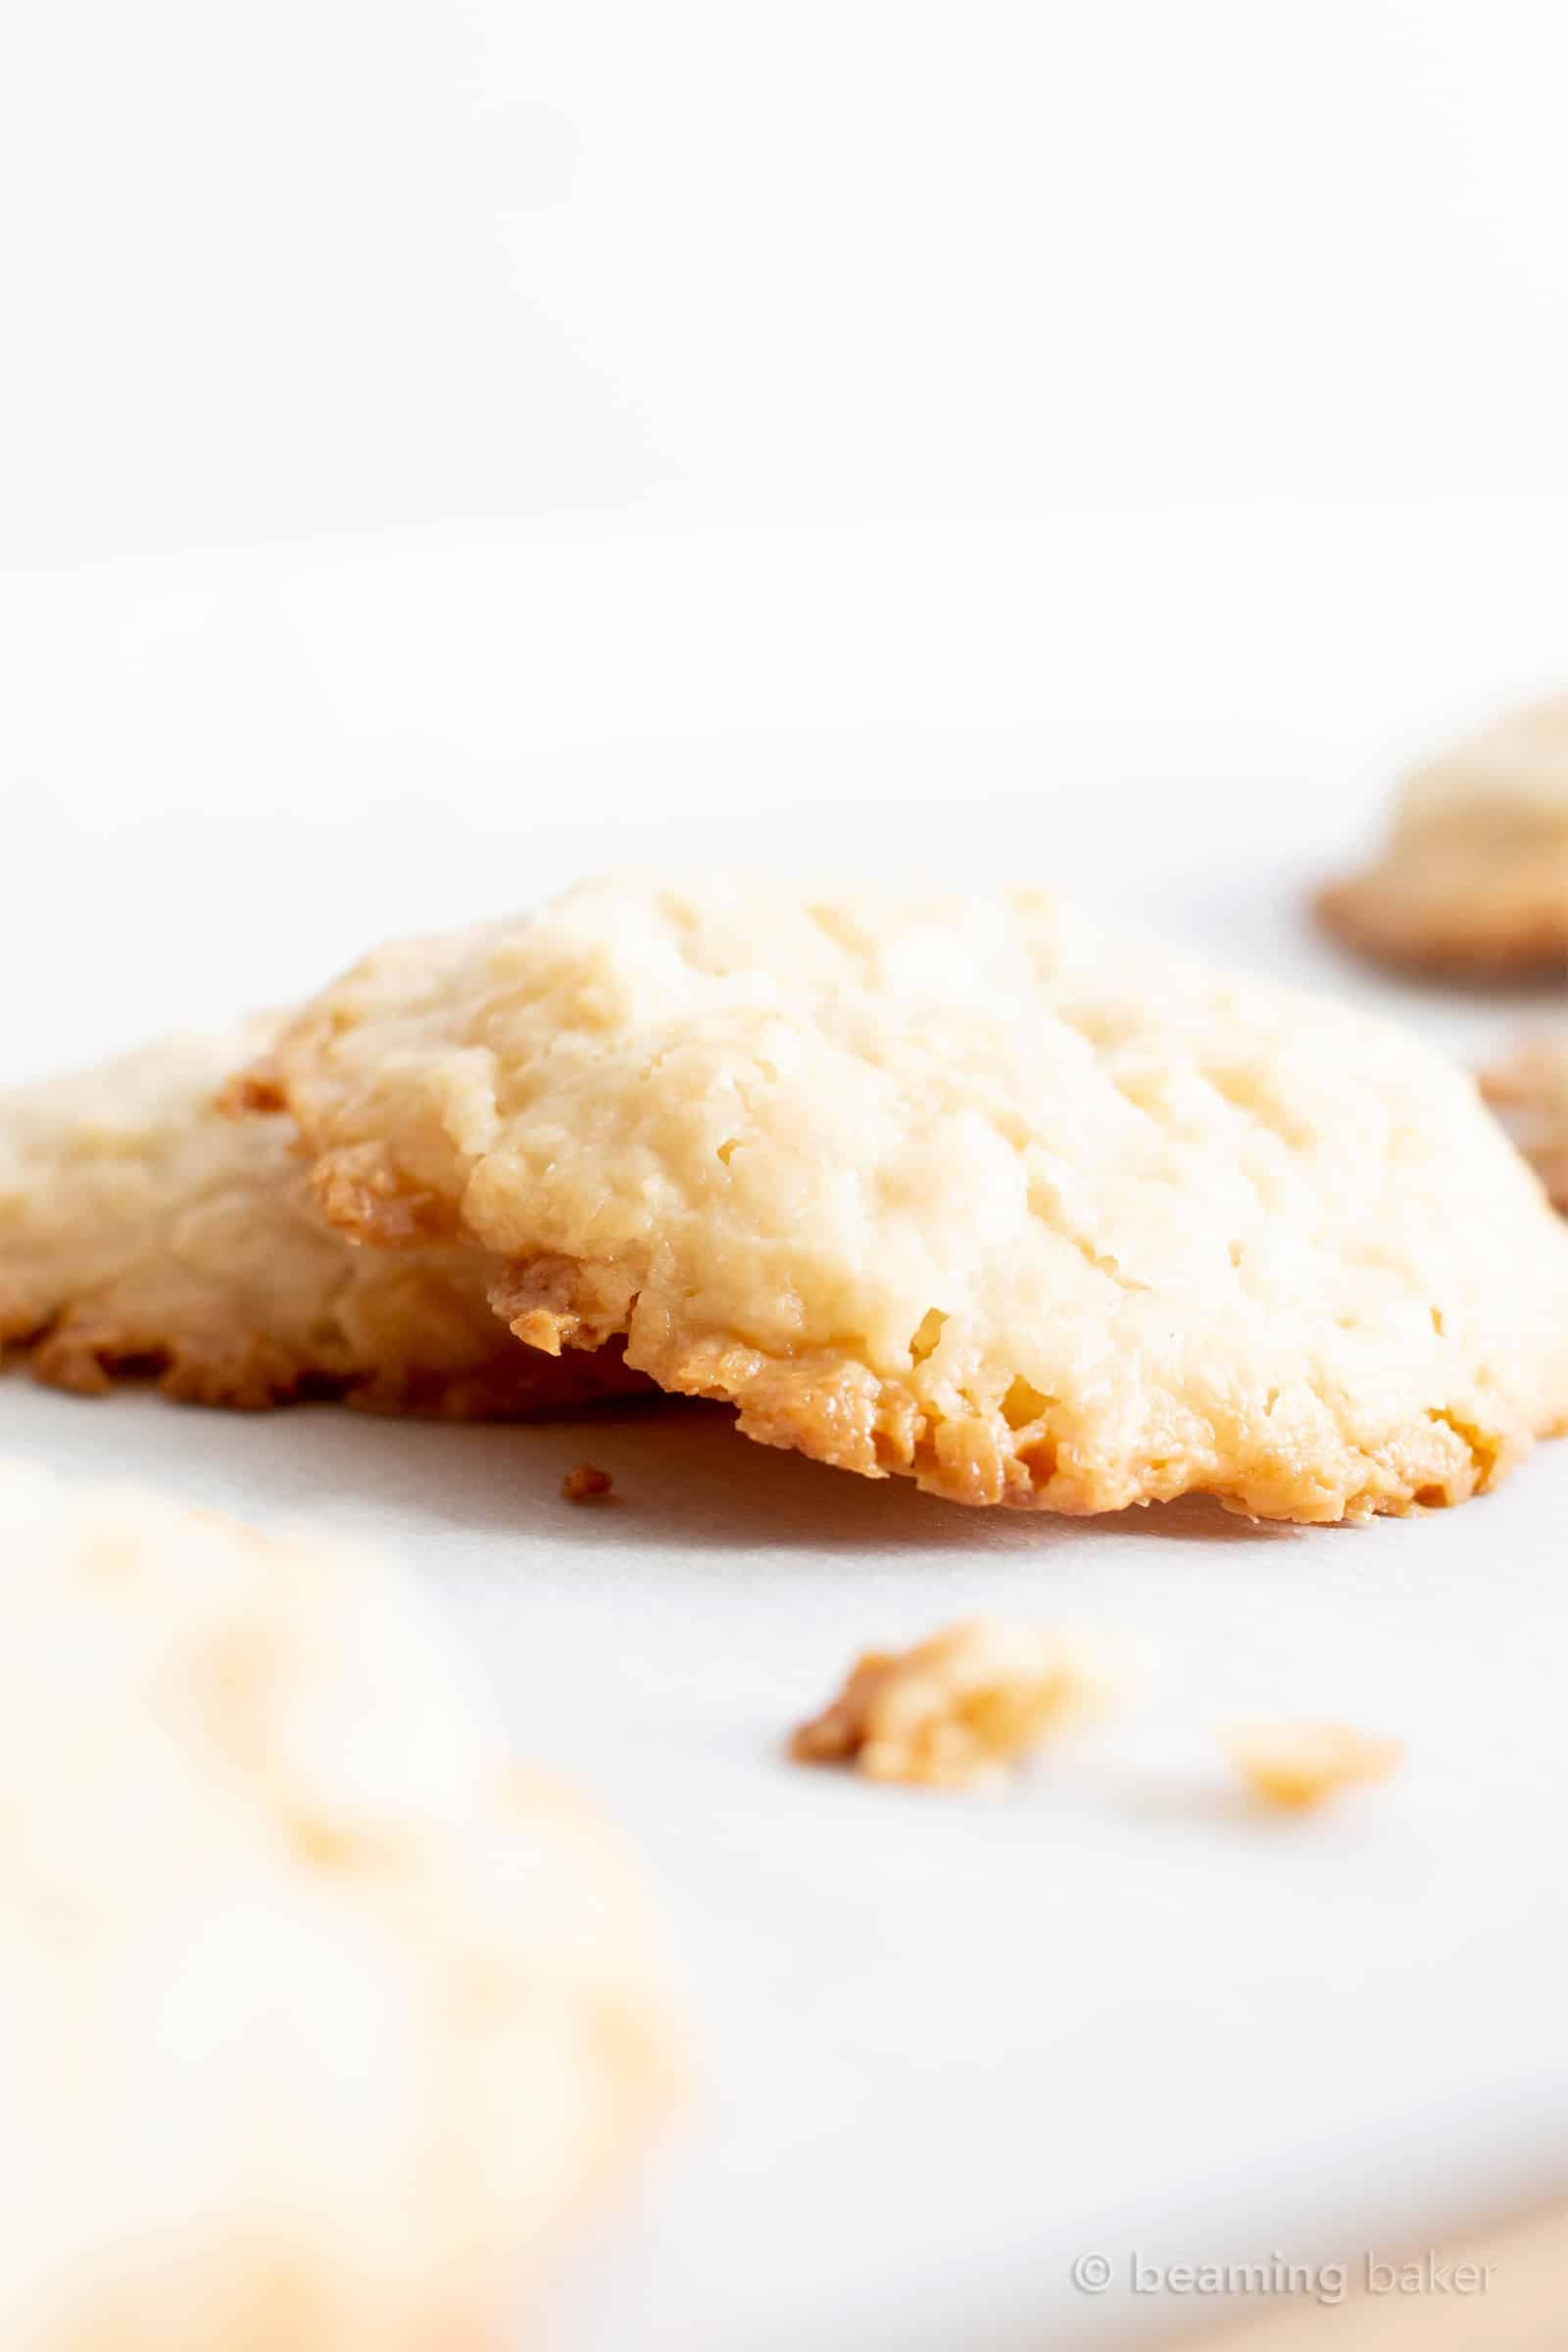 Ultimate Chewy Paleo Coconut Cookies (V, GF): the best coconut cookies! Moist and chewy on the inside, with delicious crispy edges, bursting with amazing coconut flavor. Made with healthy ingredients. #Paleo #Vegan #GlutenFree #DairyFree #BeamingBaker #Coconut #Cookies | Recipe at BeamingBaker.com